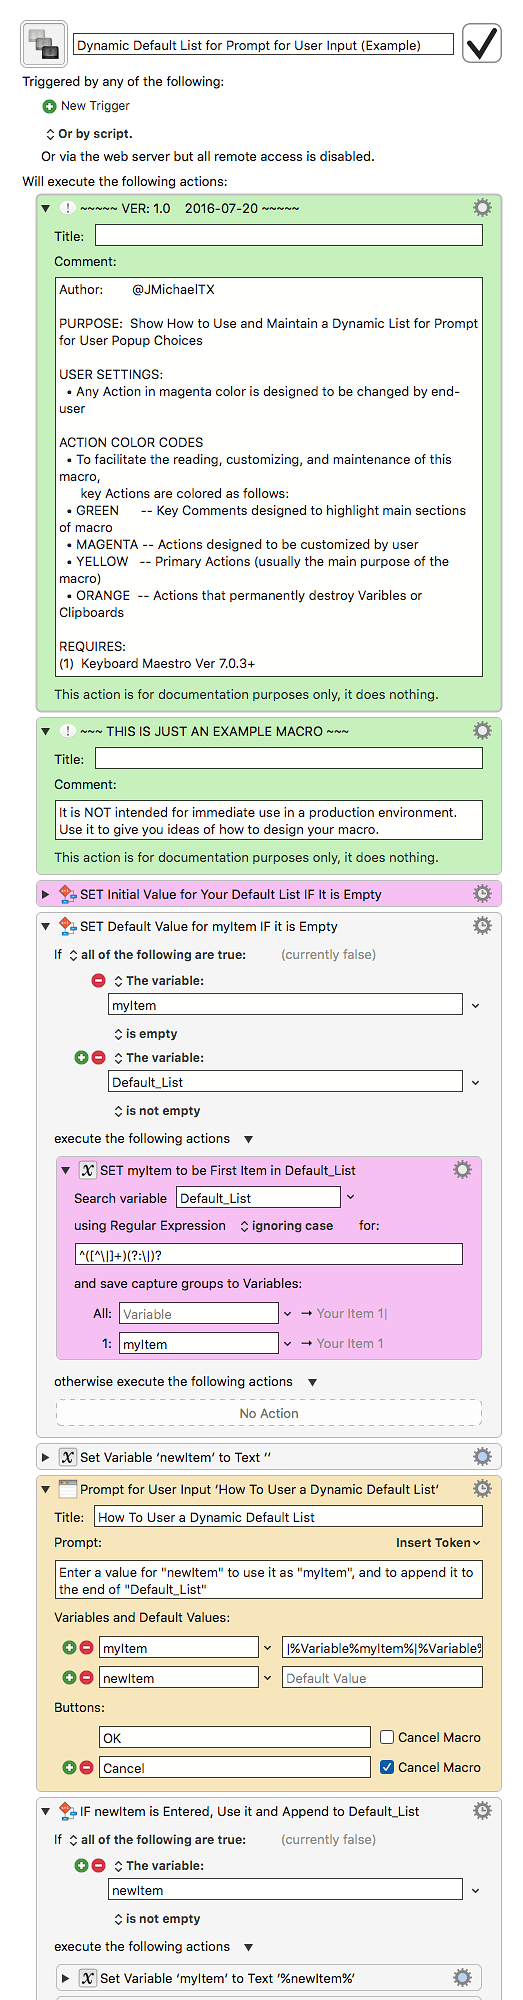 Dynamic Default List for Prompt for User Input (Example